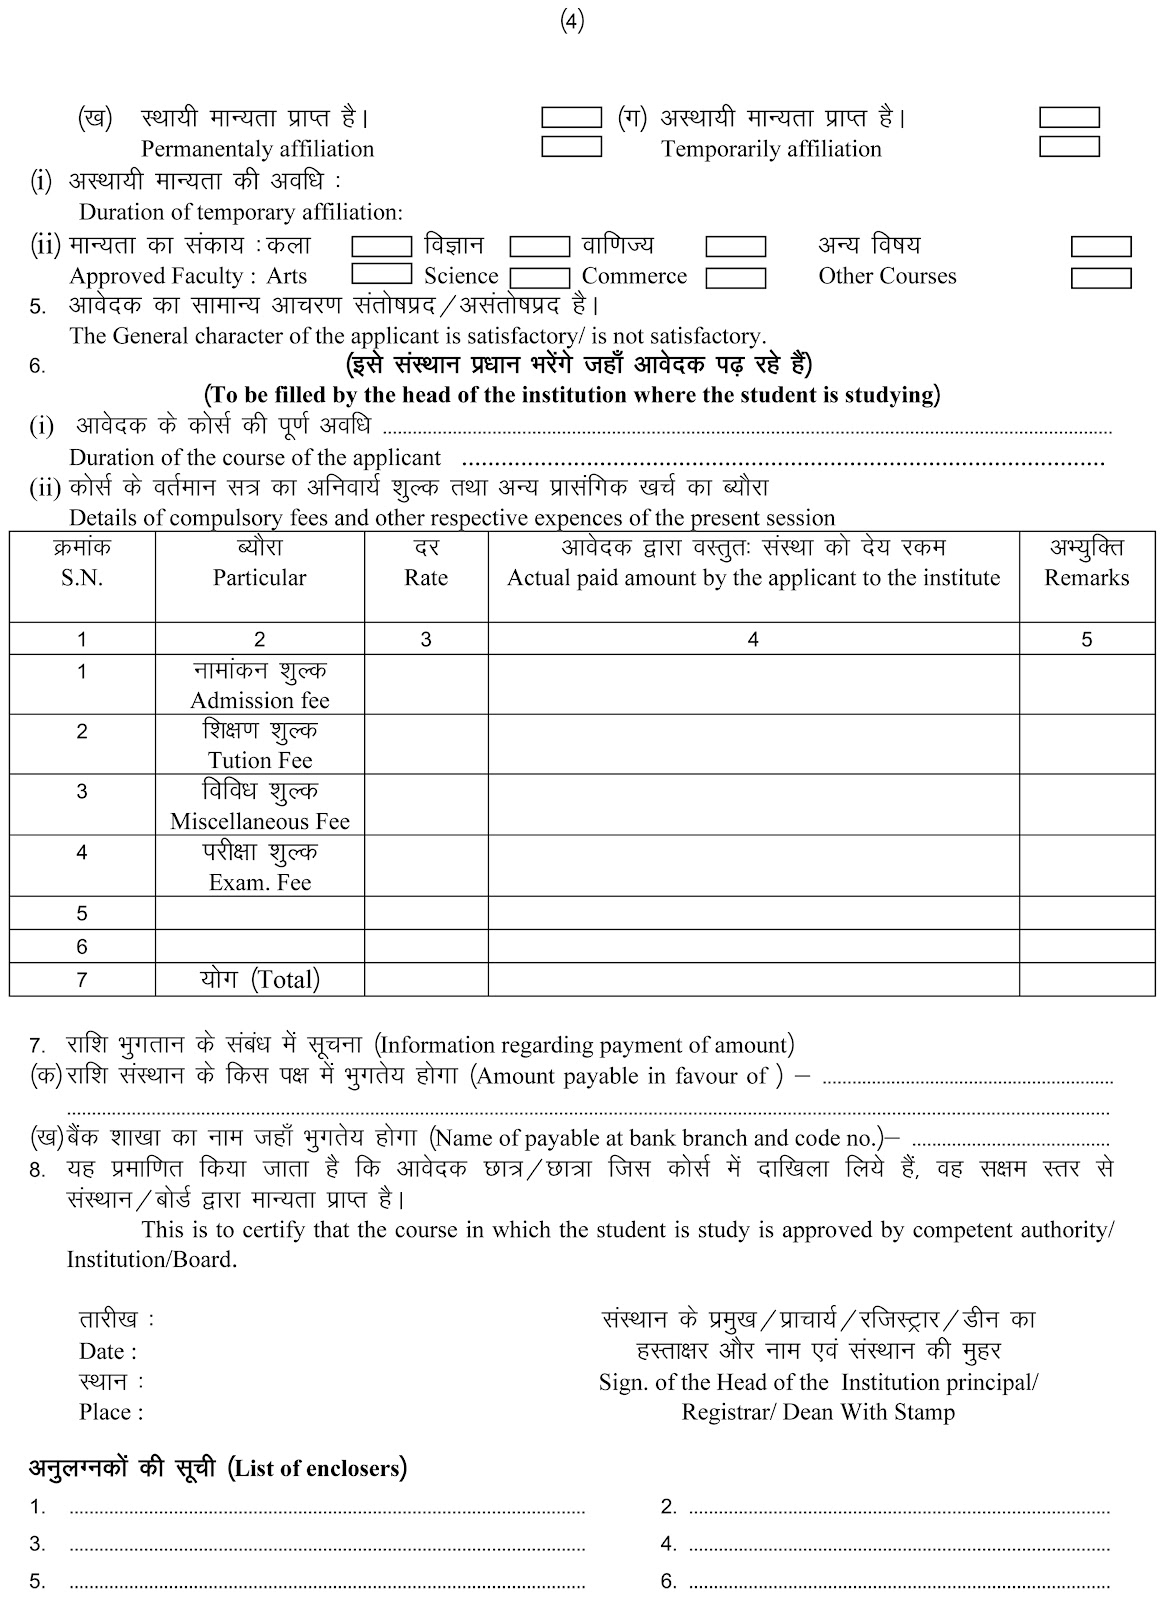 scholarship form download - Leon.escapers.co on scholarship application letter, scholarship application form template, scholarship application flyer, scholarship opportunities,